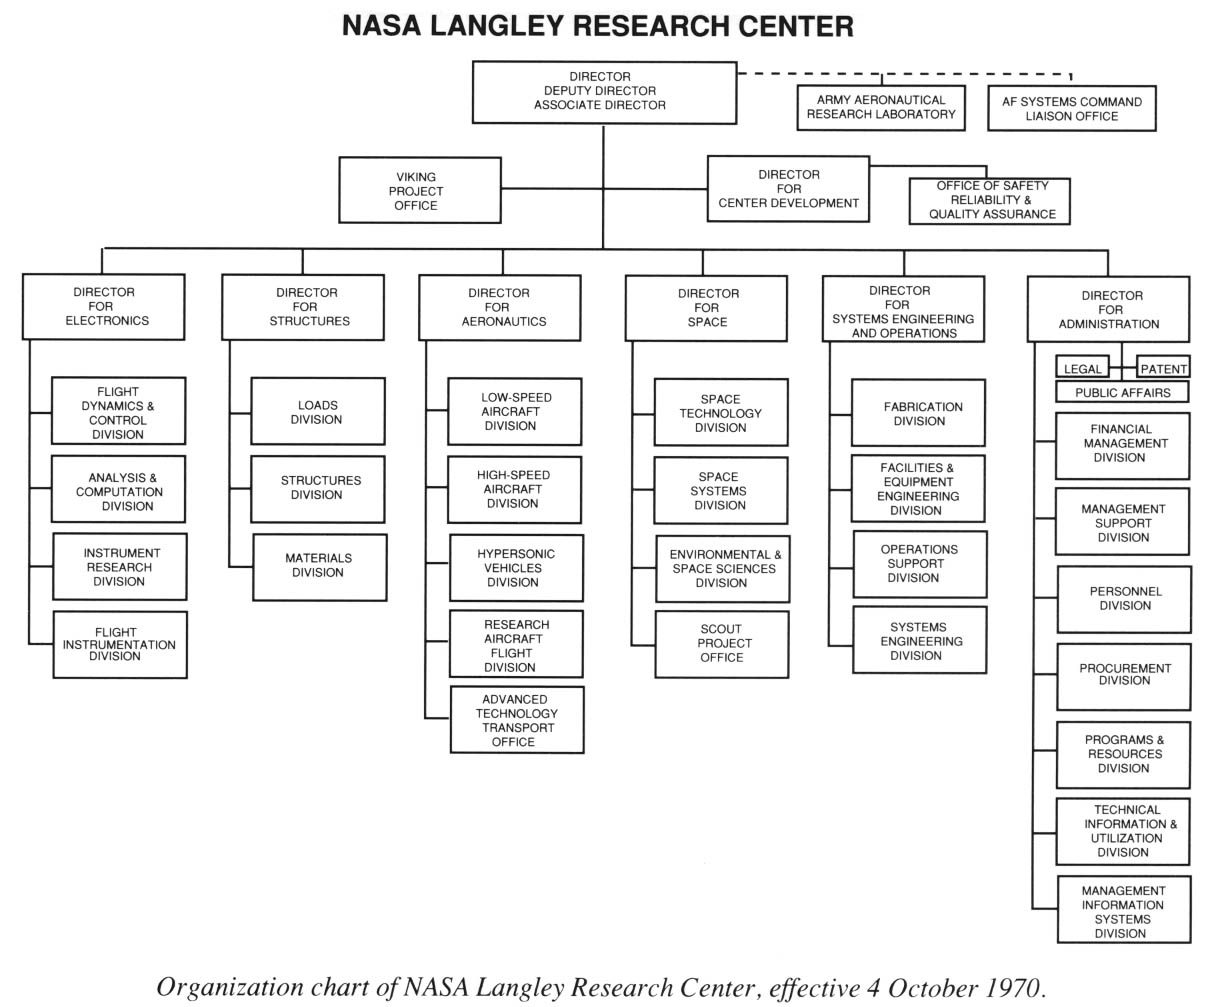 iss nasa organization chart - photo #25